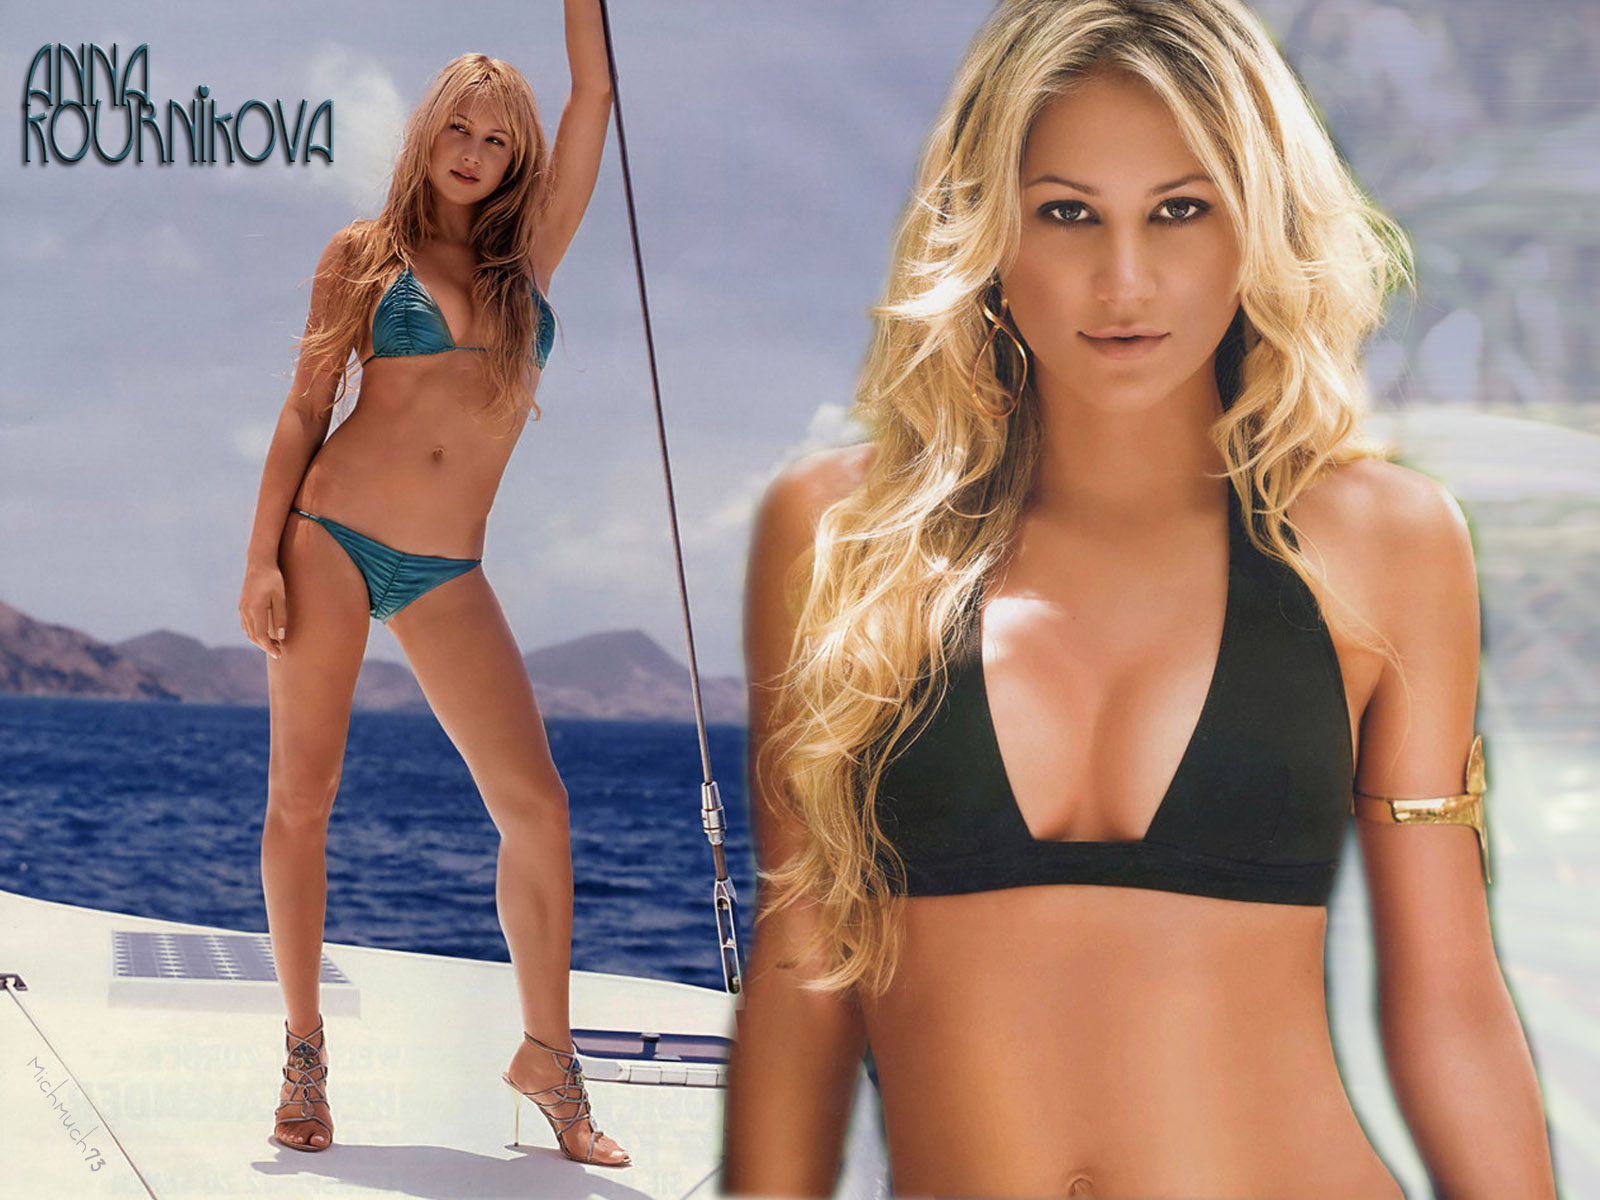 wta images anna kournikova in sea worthy pursuits hd wallpaper and background photos 24620298